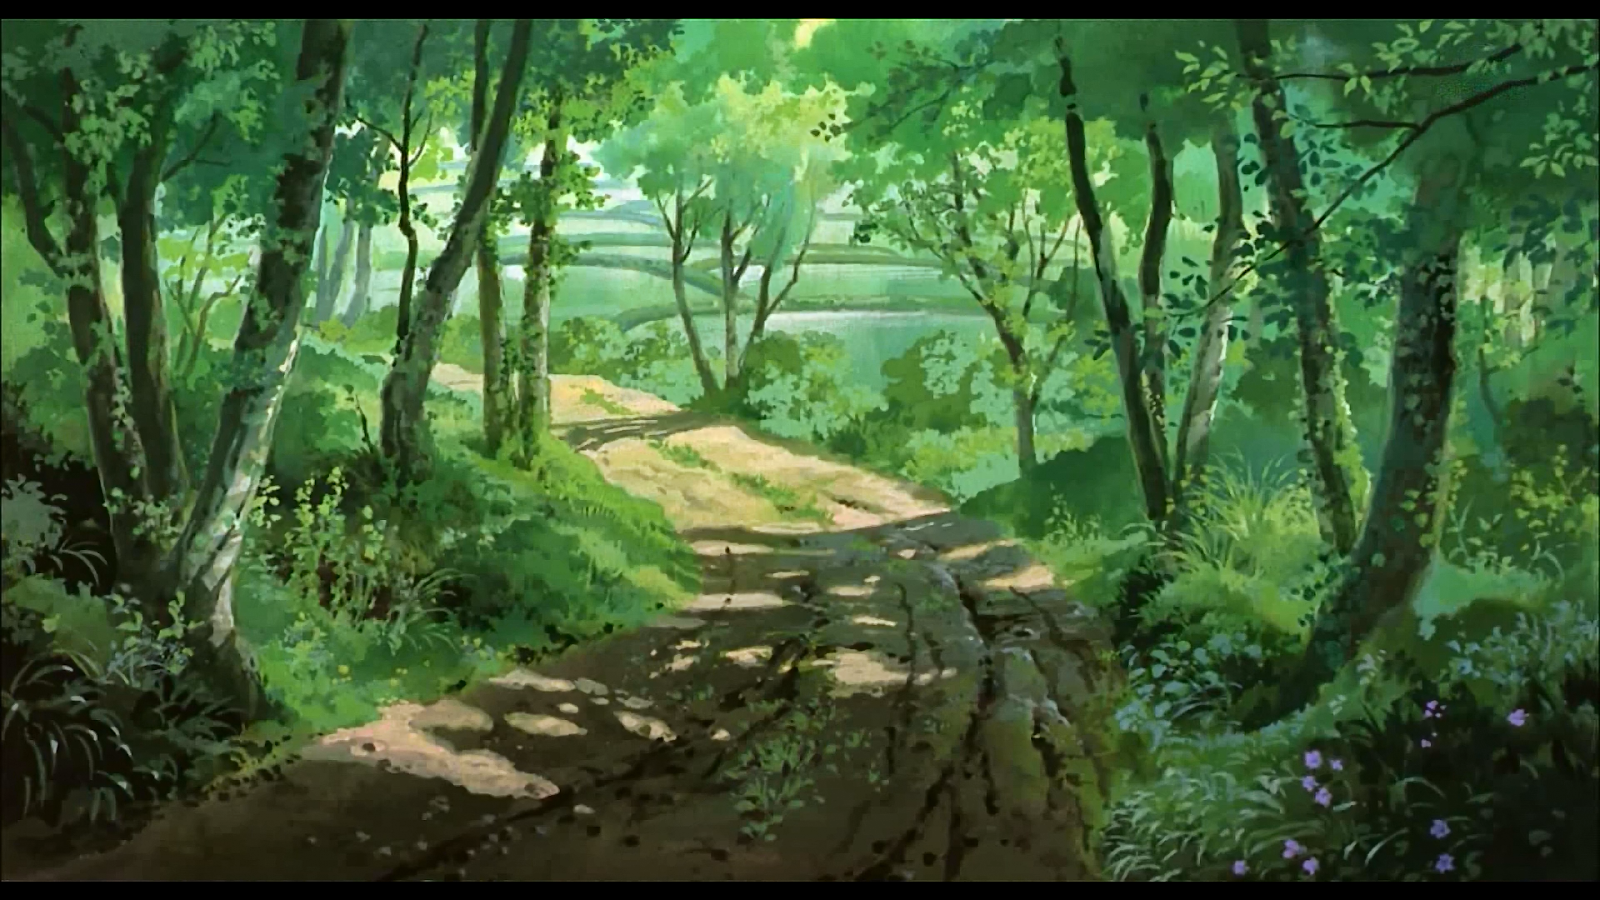 Anime landscape forest animation backgrounds - Anime forest background ...